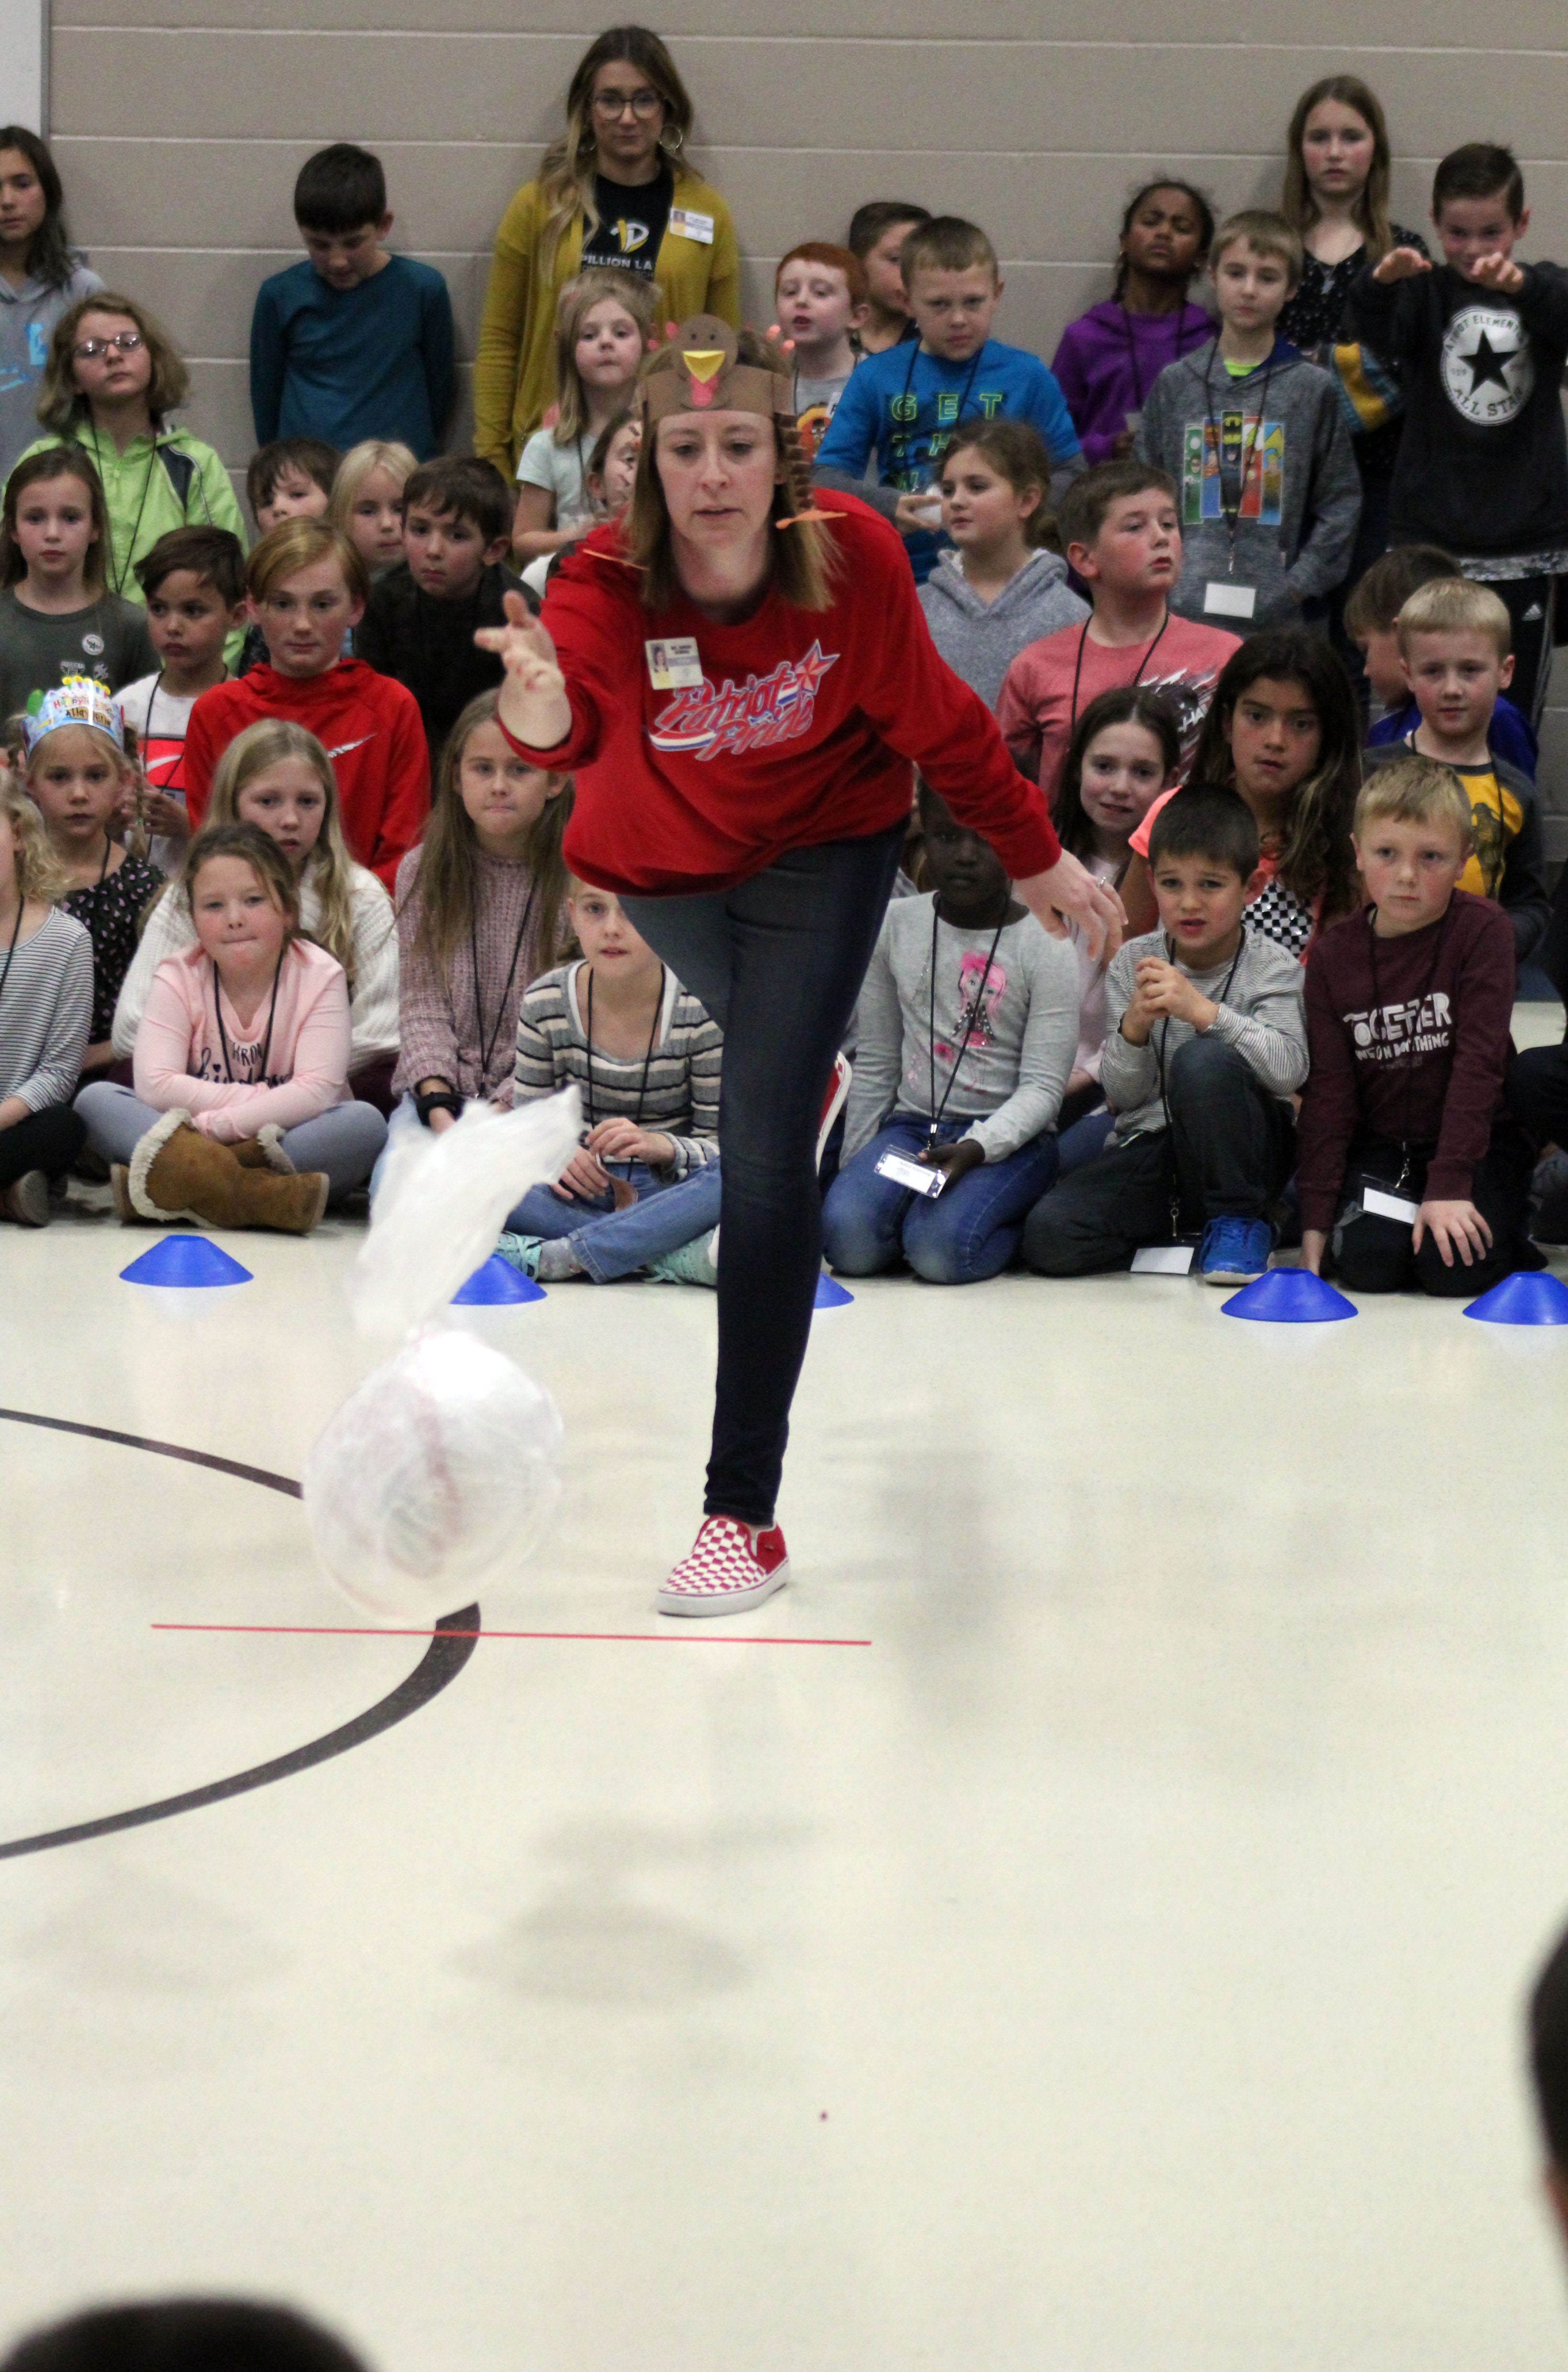 Kindergarten teacher Sarah Deming bowled her way to first place with a frozen turkey